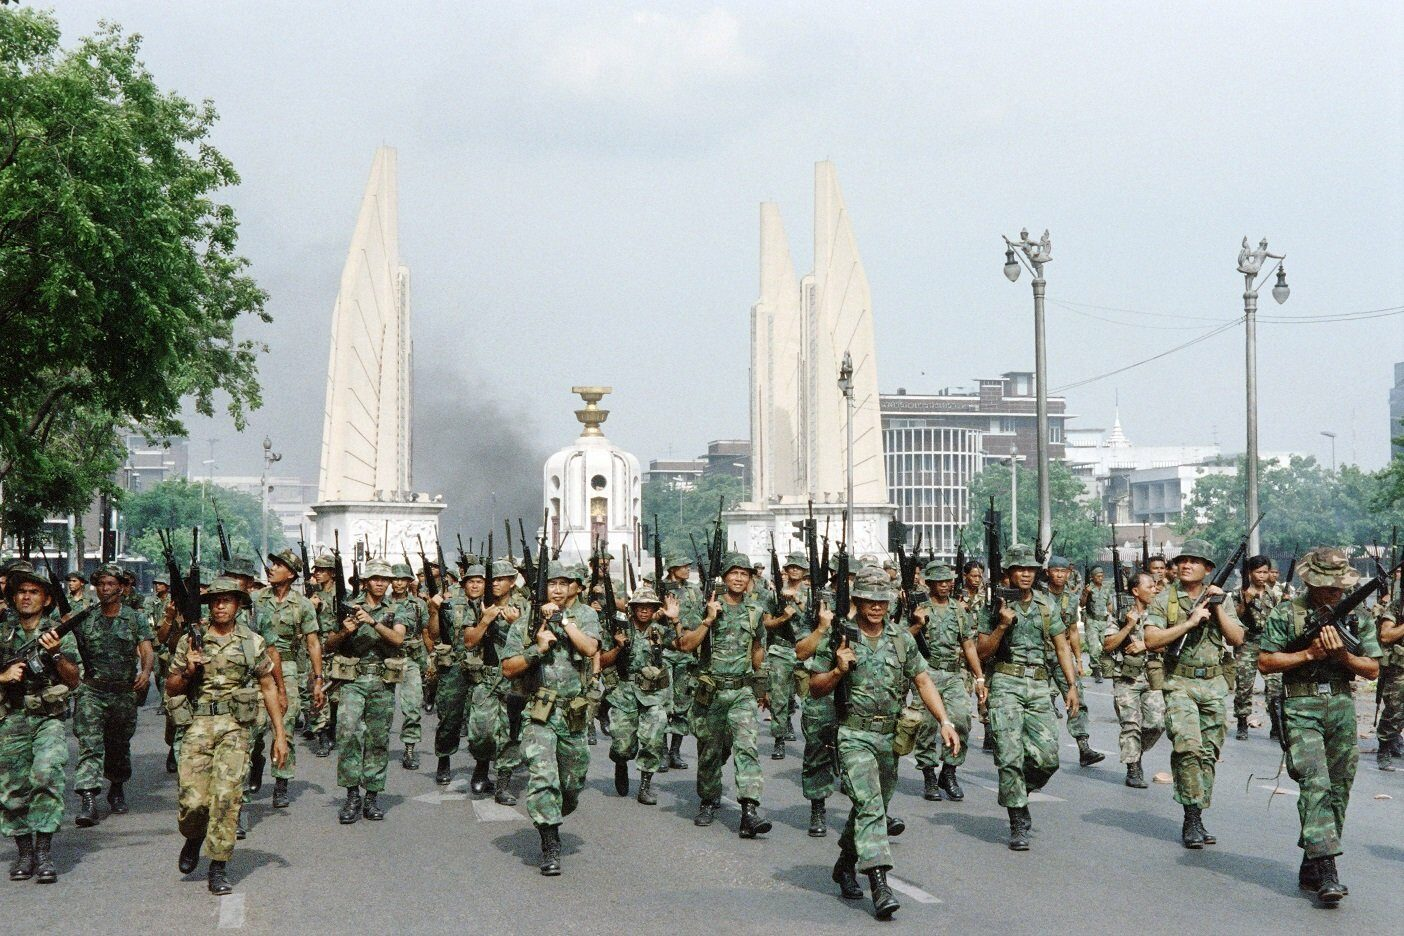 During protests against the government of Prime Minister Suchinda Kraprayoon, thaï troops began shooting after angry crowds went on a rampage on May 20, 1992 in the city center of Bangkok.